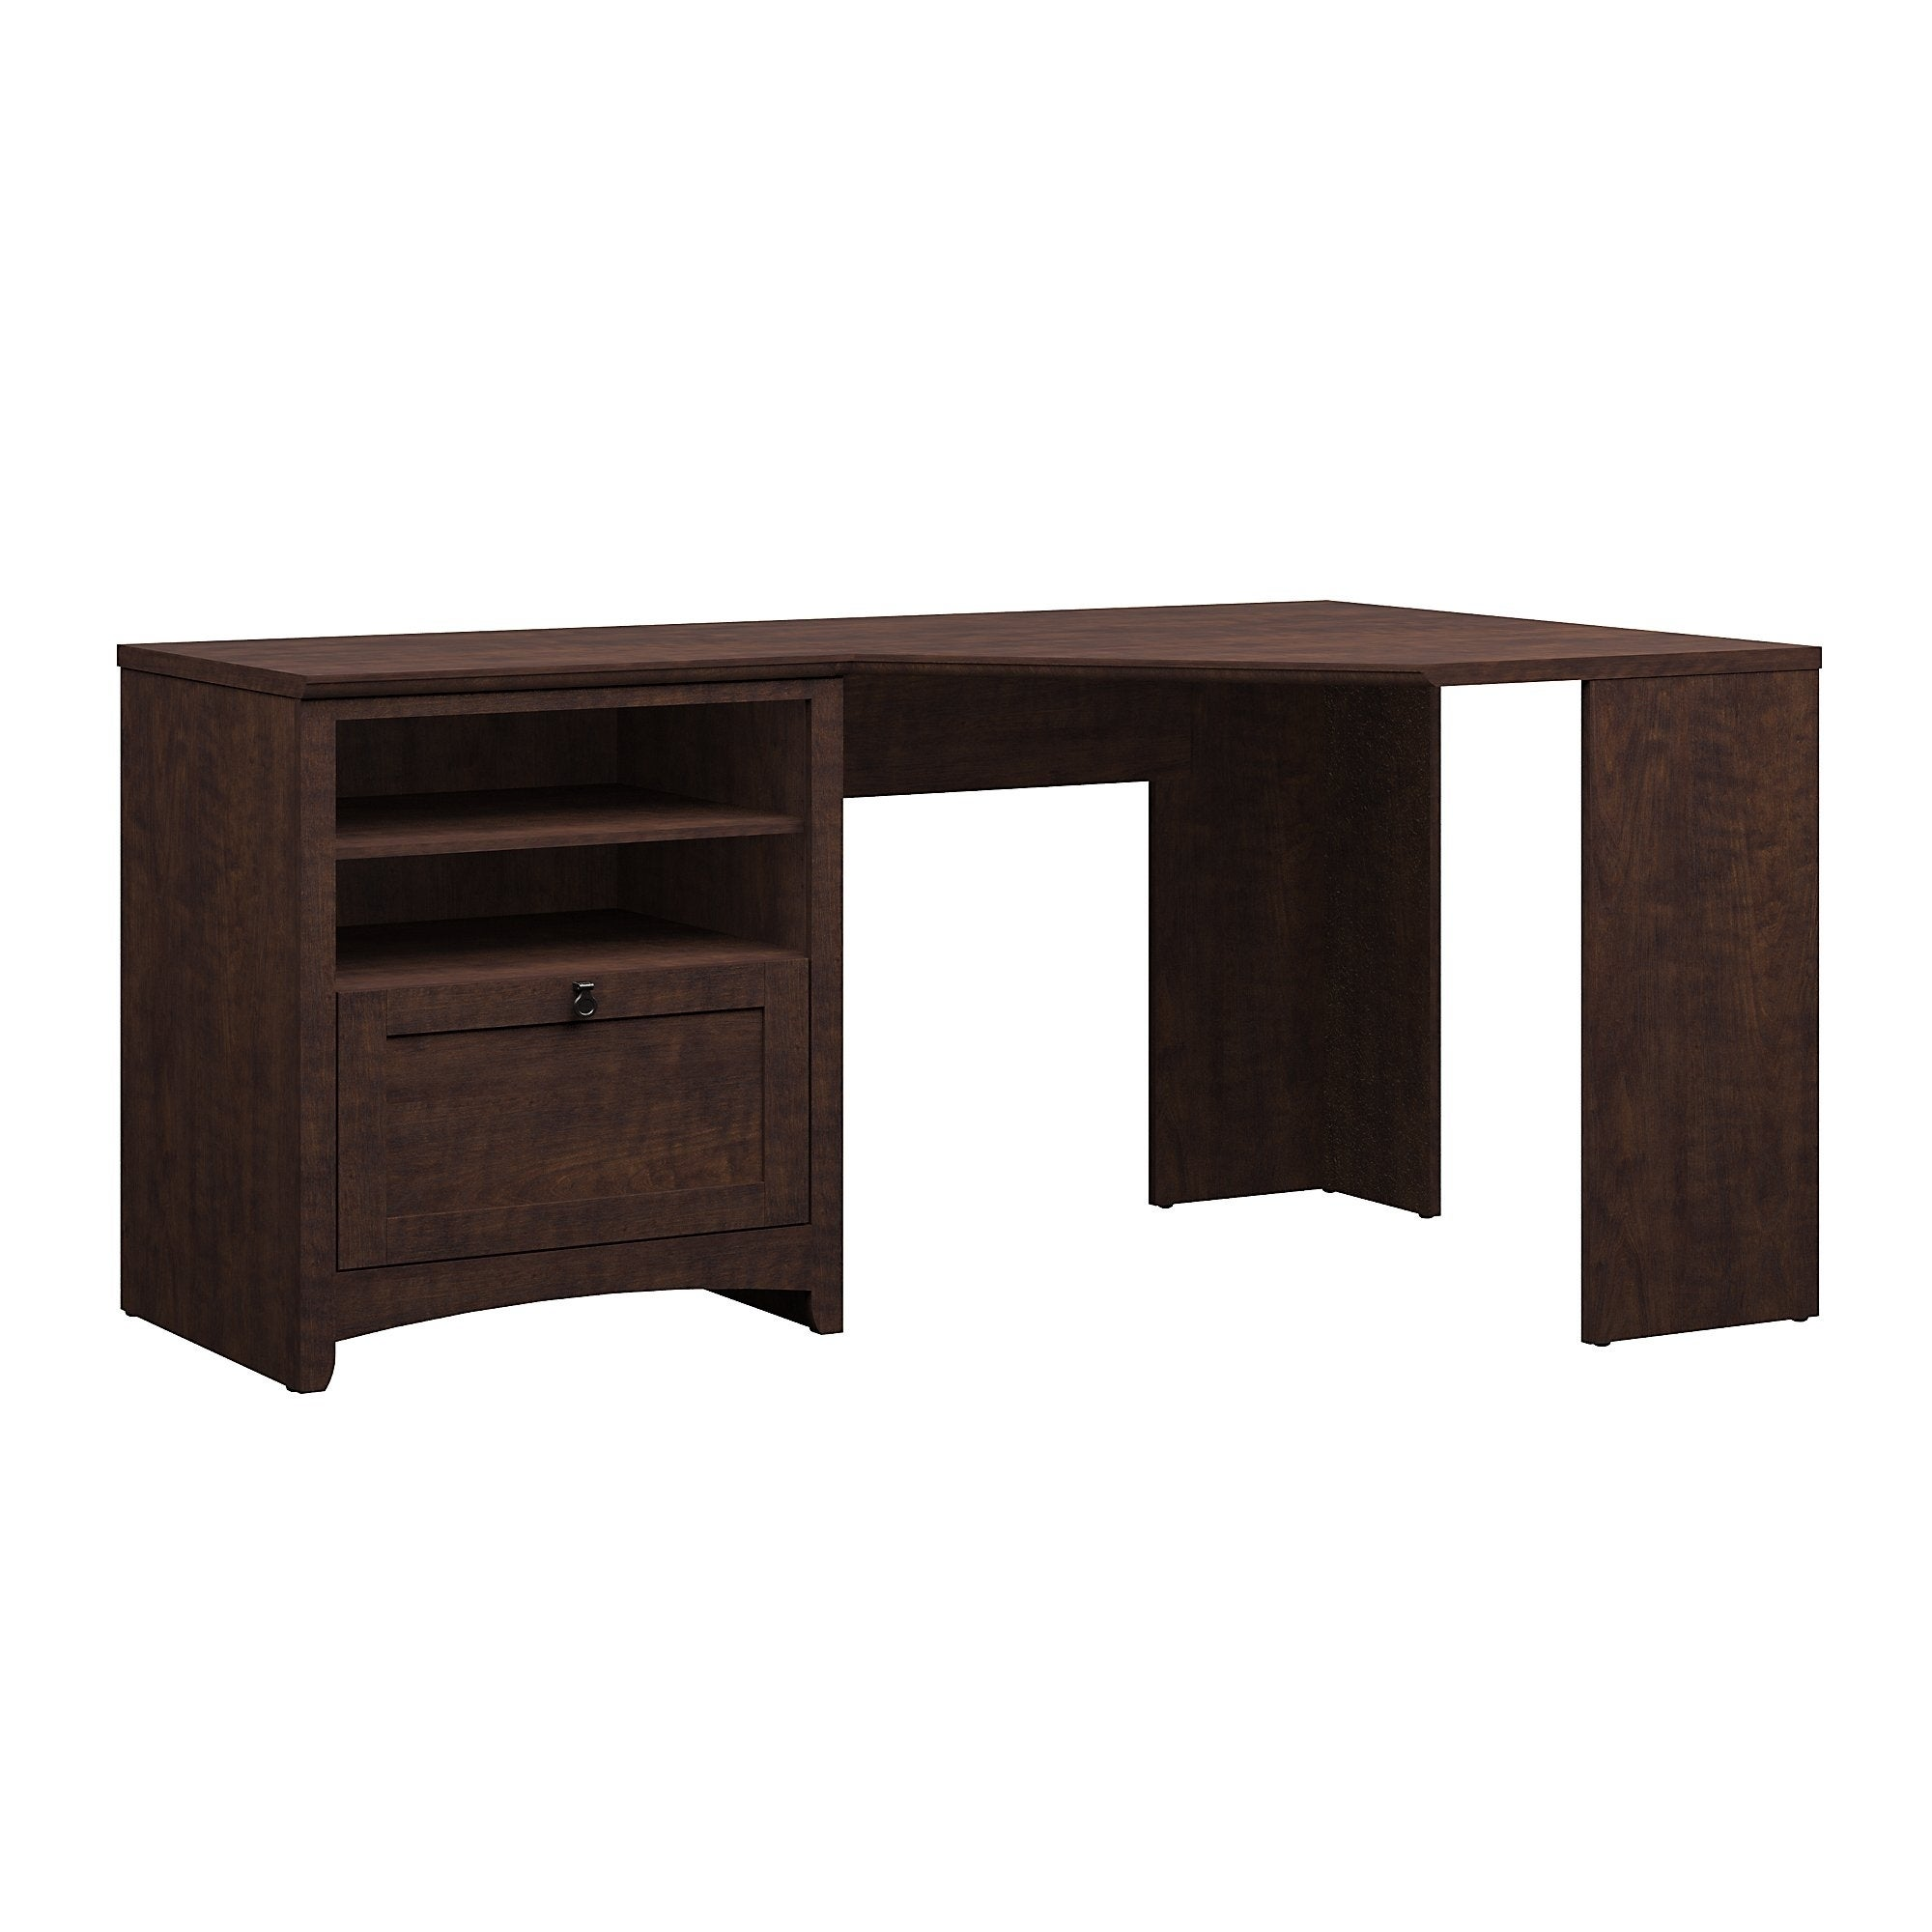 Merveilleux Shop Bush Furniture Buena Vista 60W Corner Desk In Madison Cherry   On Sale    Free Shipping Today   Overstock.com   8236917